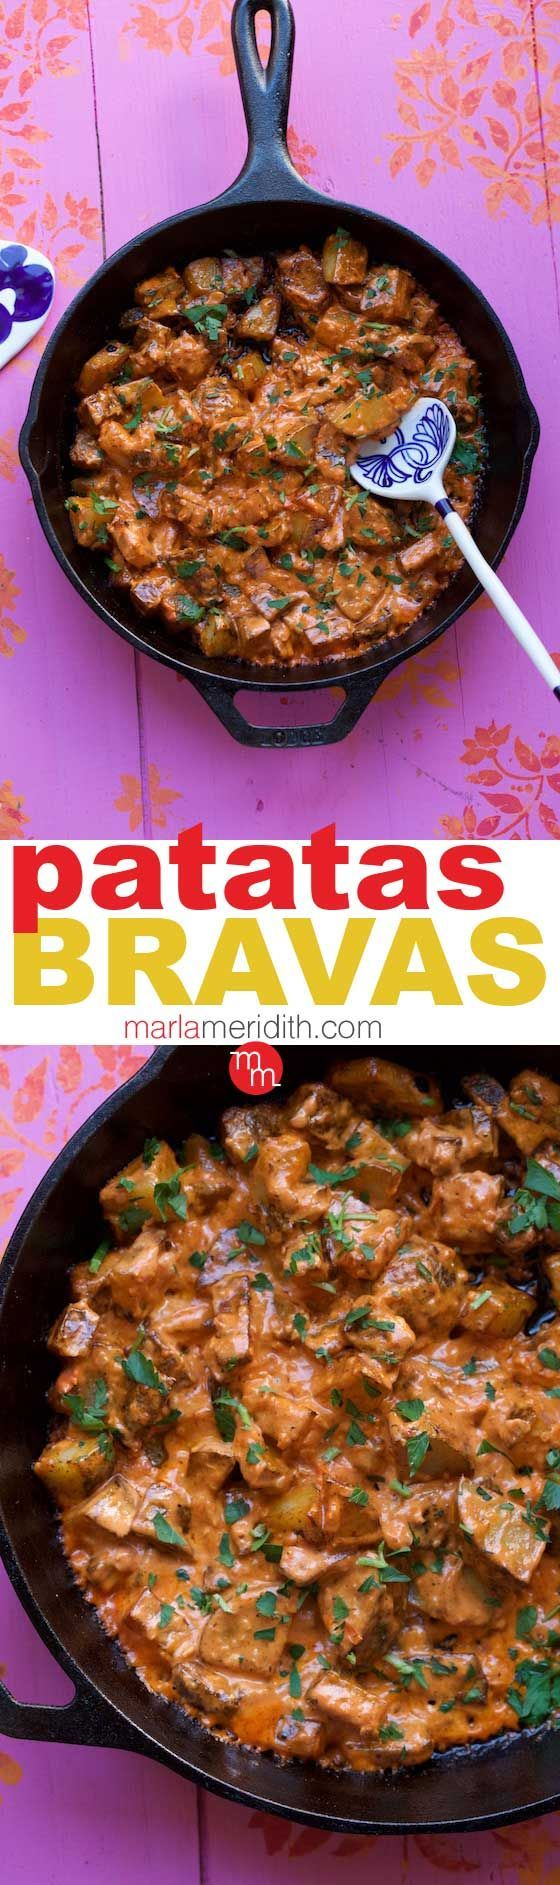 Patatas Bravas: This Spanish bar snack is one of the best things I've ever eaten! #recipe MarlaMeridith.com #potato